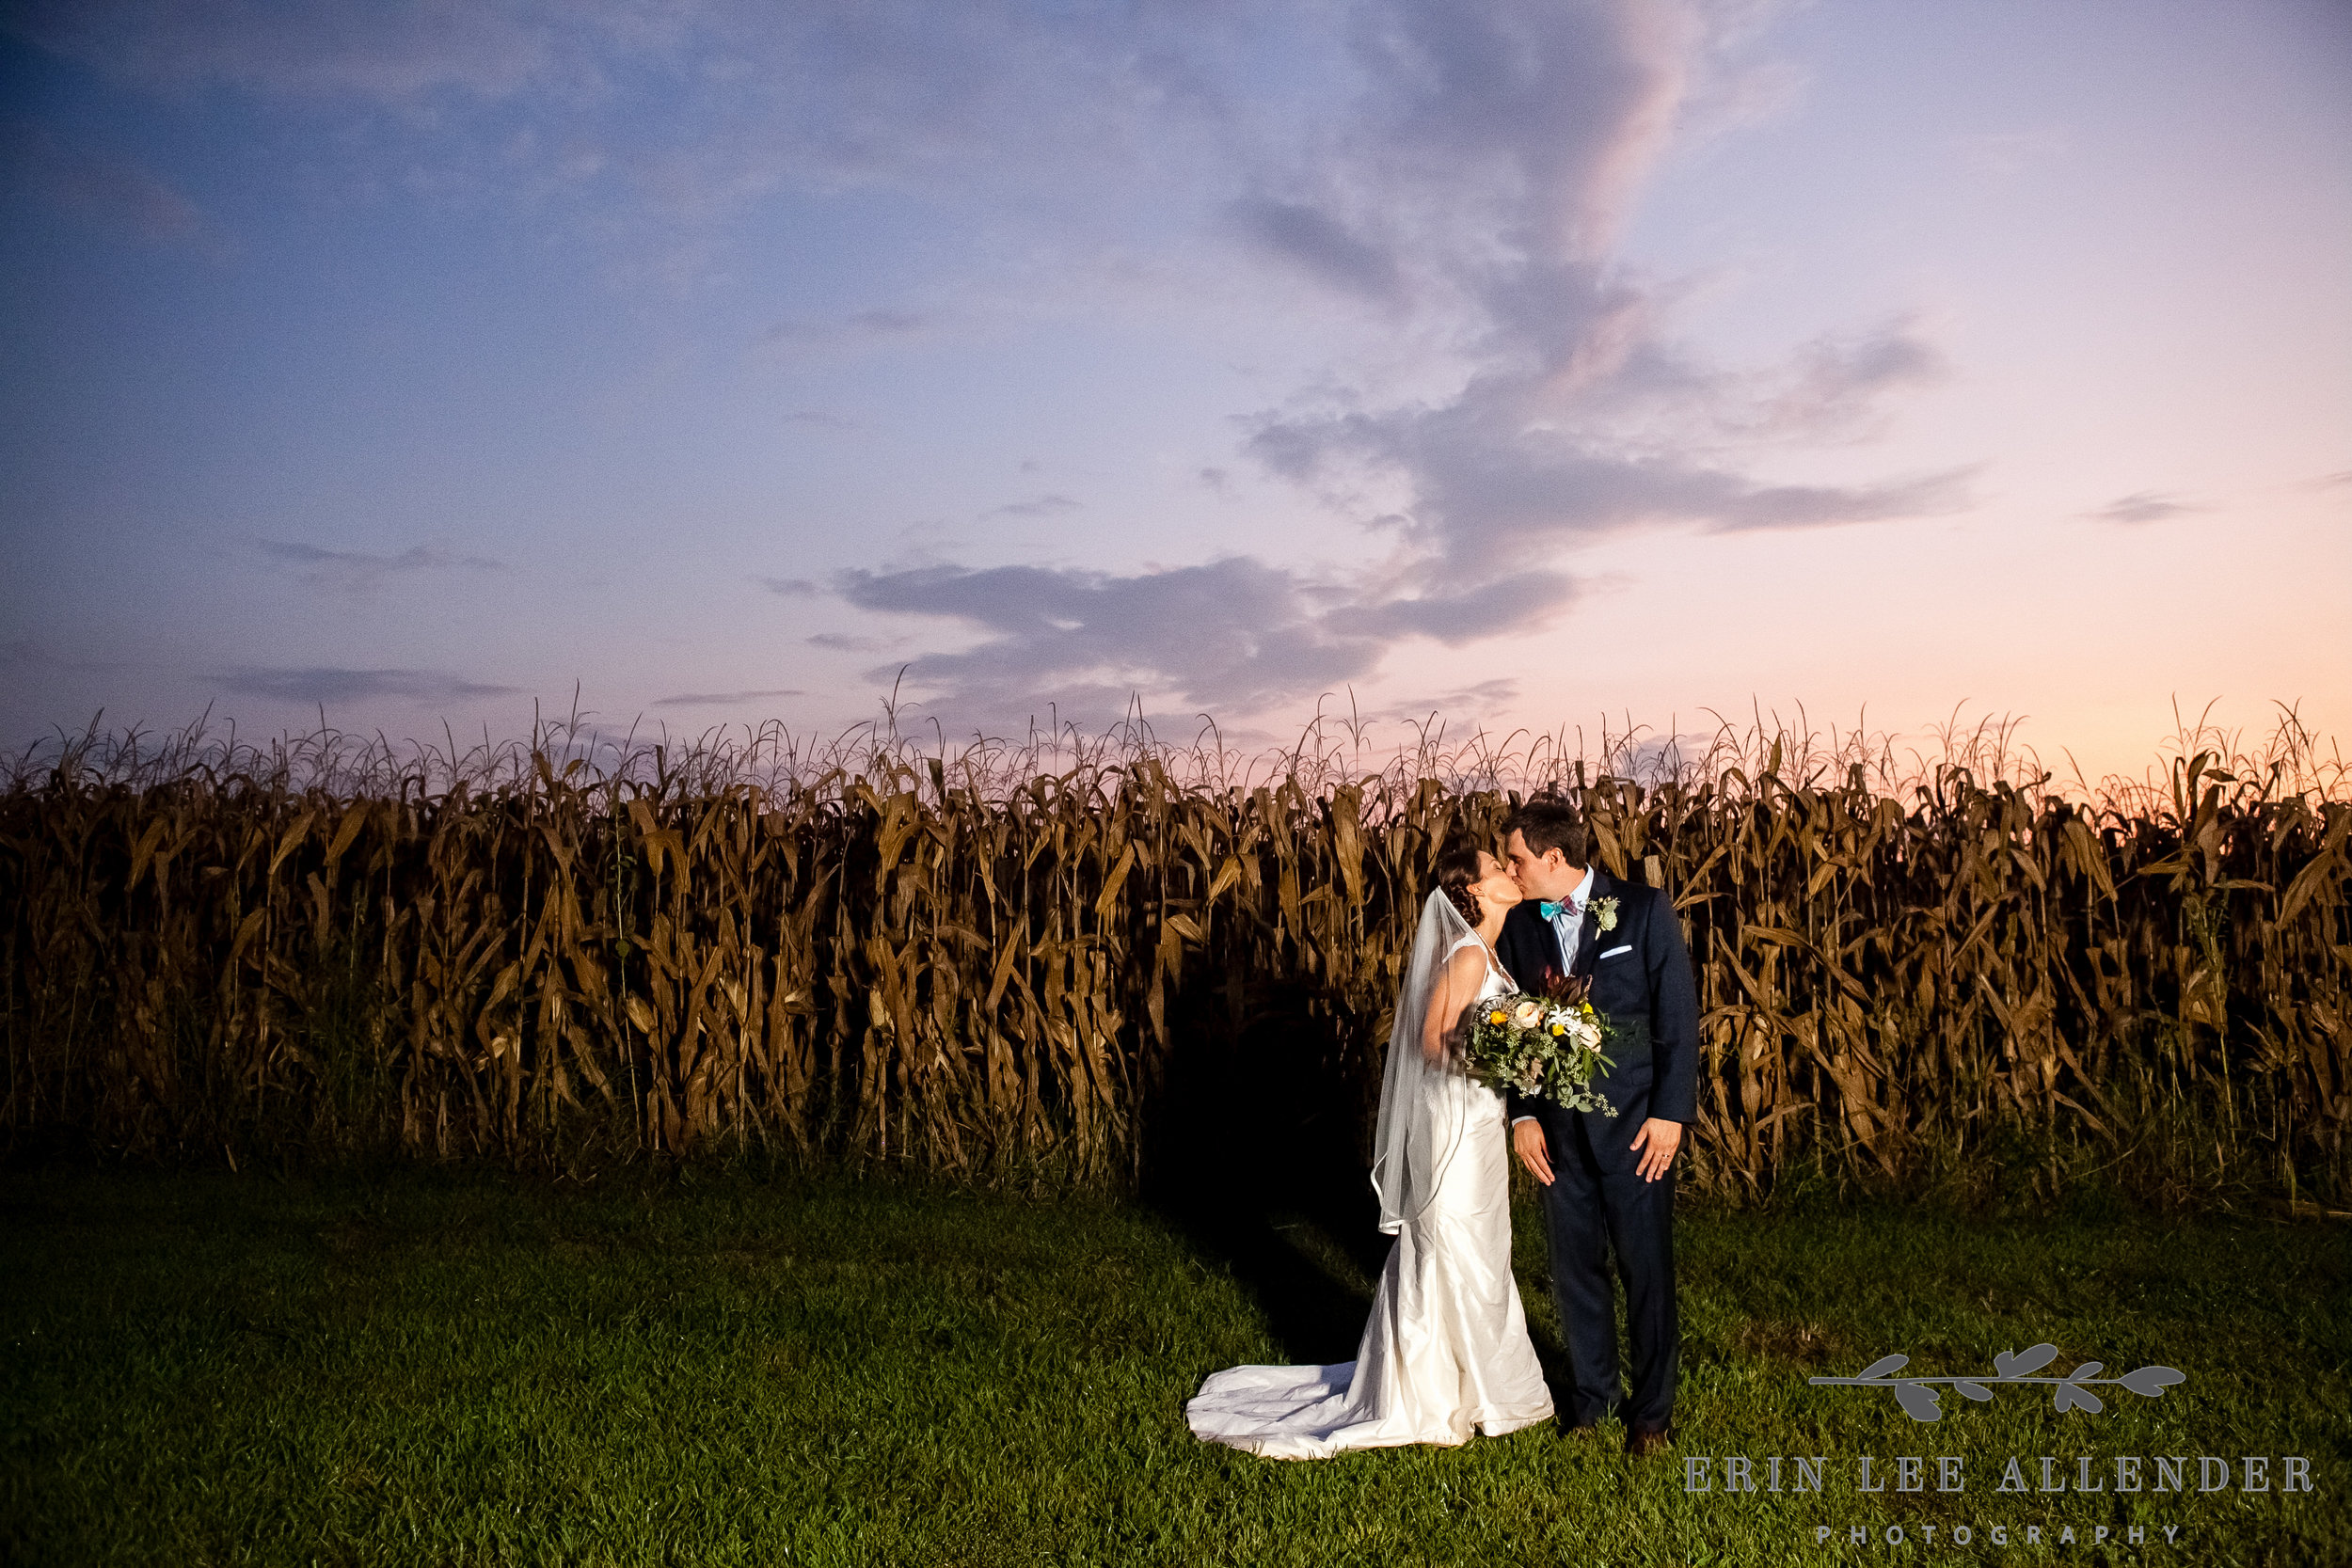 Bride_Groom_Cornfield_Sunset